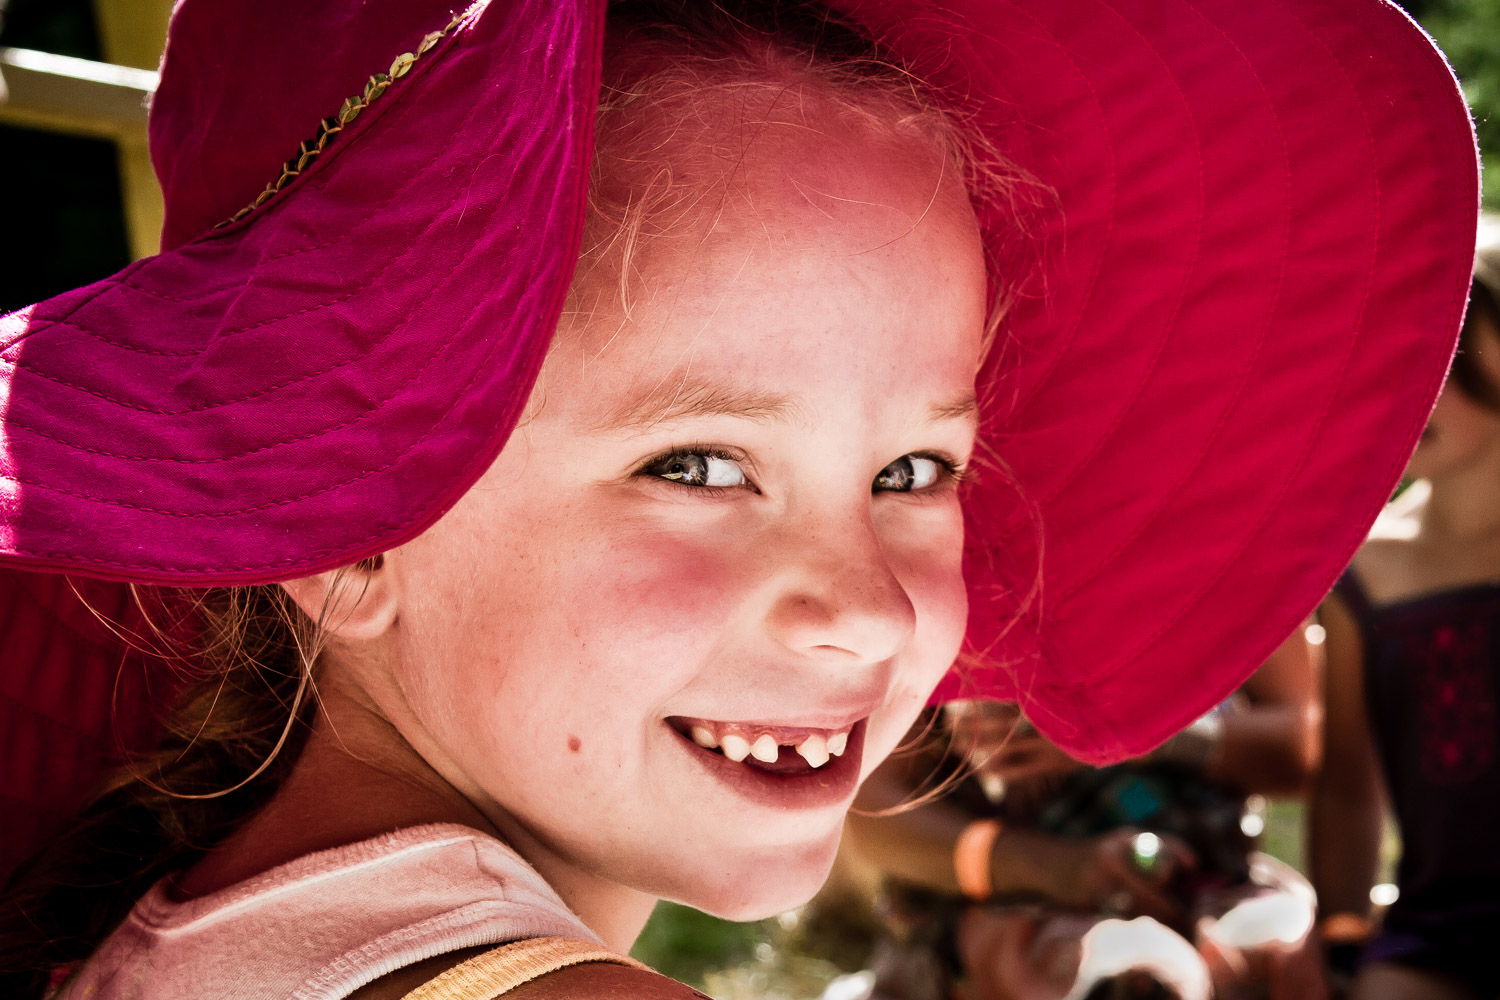 Young-Girl-In-Floppy-Red-Hat-Missing-Tooth.jpg